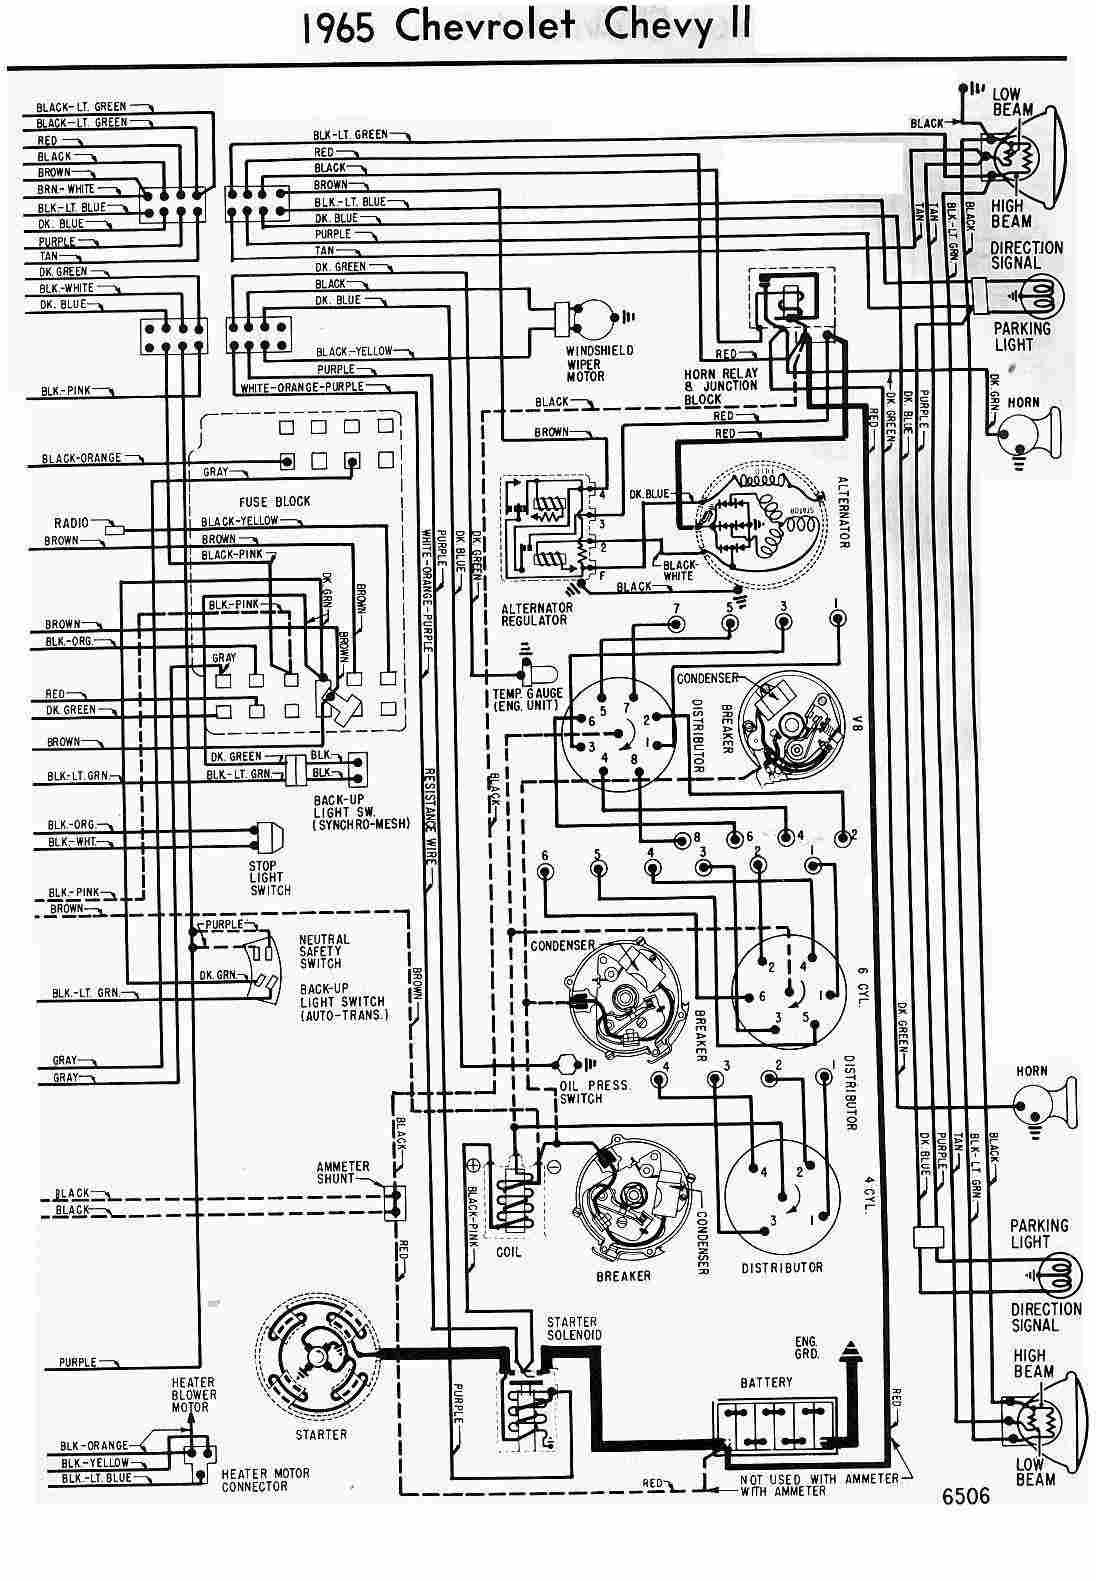 65 corvair wiring diagram simple wiring diagrams 2009 chevy impala wiring diagram 1965 chevy wiring diagram [ 1096 x 1581 Pixel ]